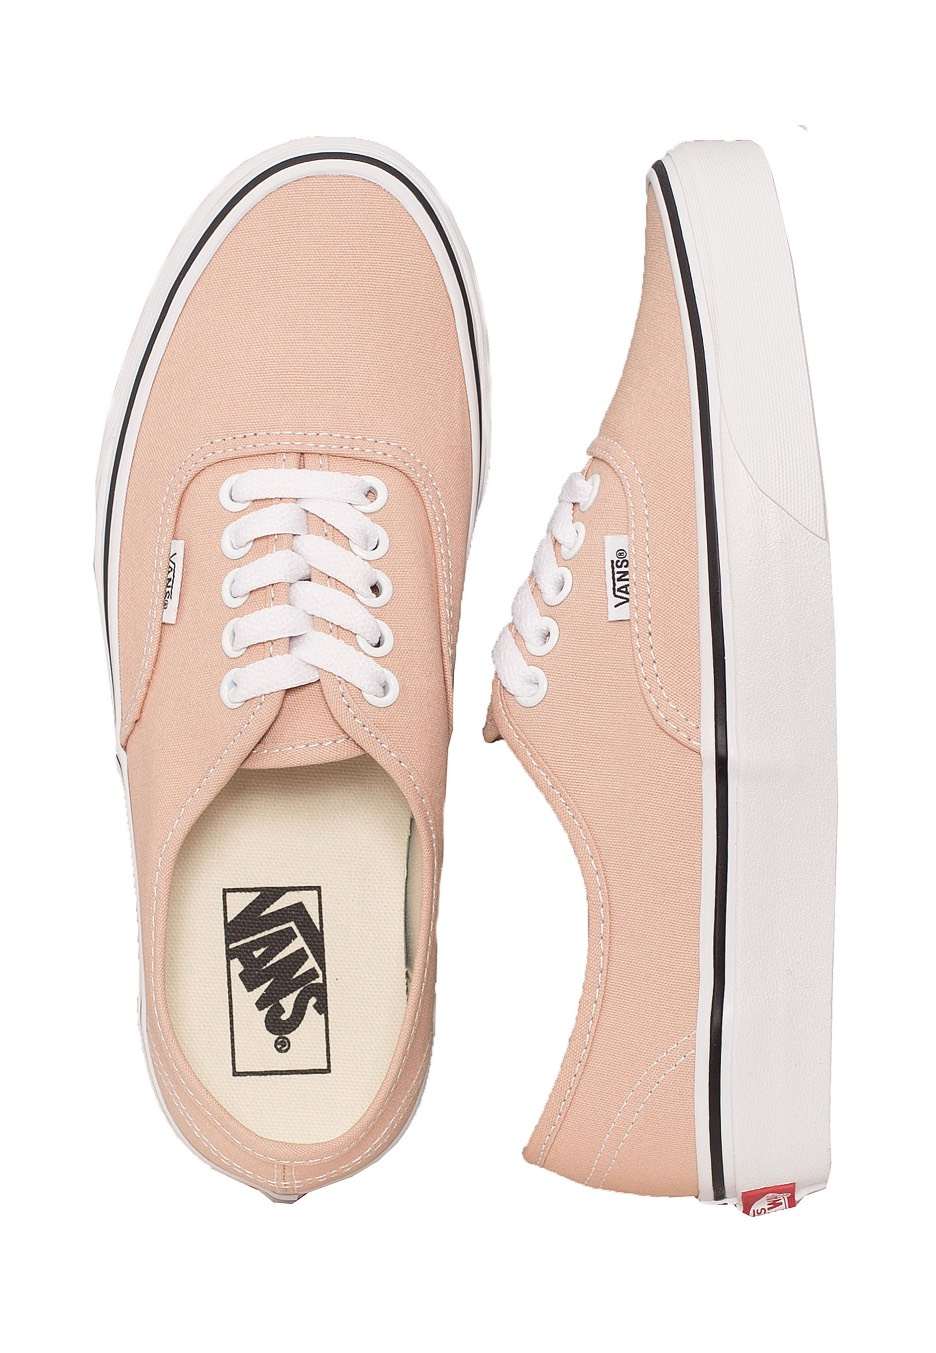 Vans Authentic FrappeTrue White Damskie buty